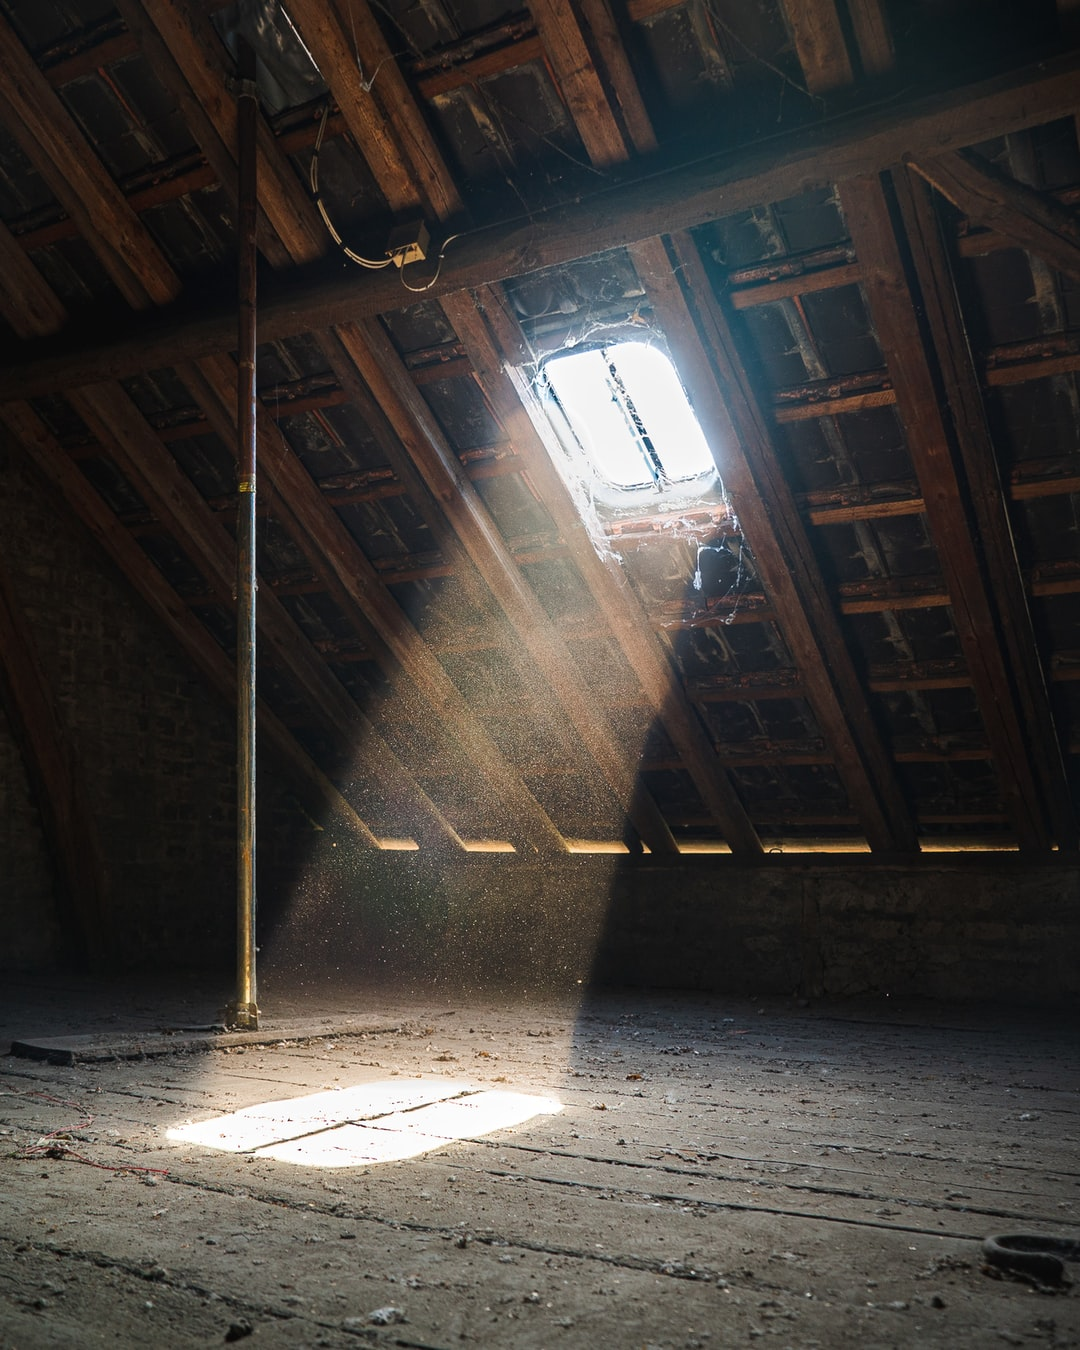 same attic, other perspective. Captured in Manheim, Germany.